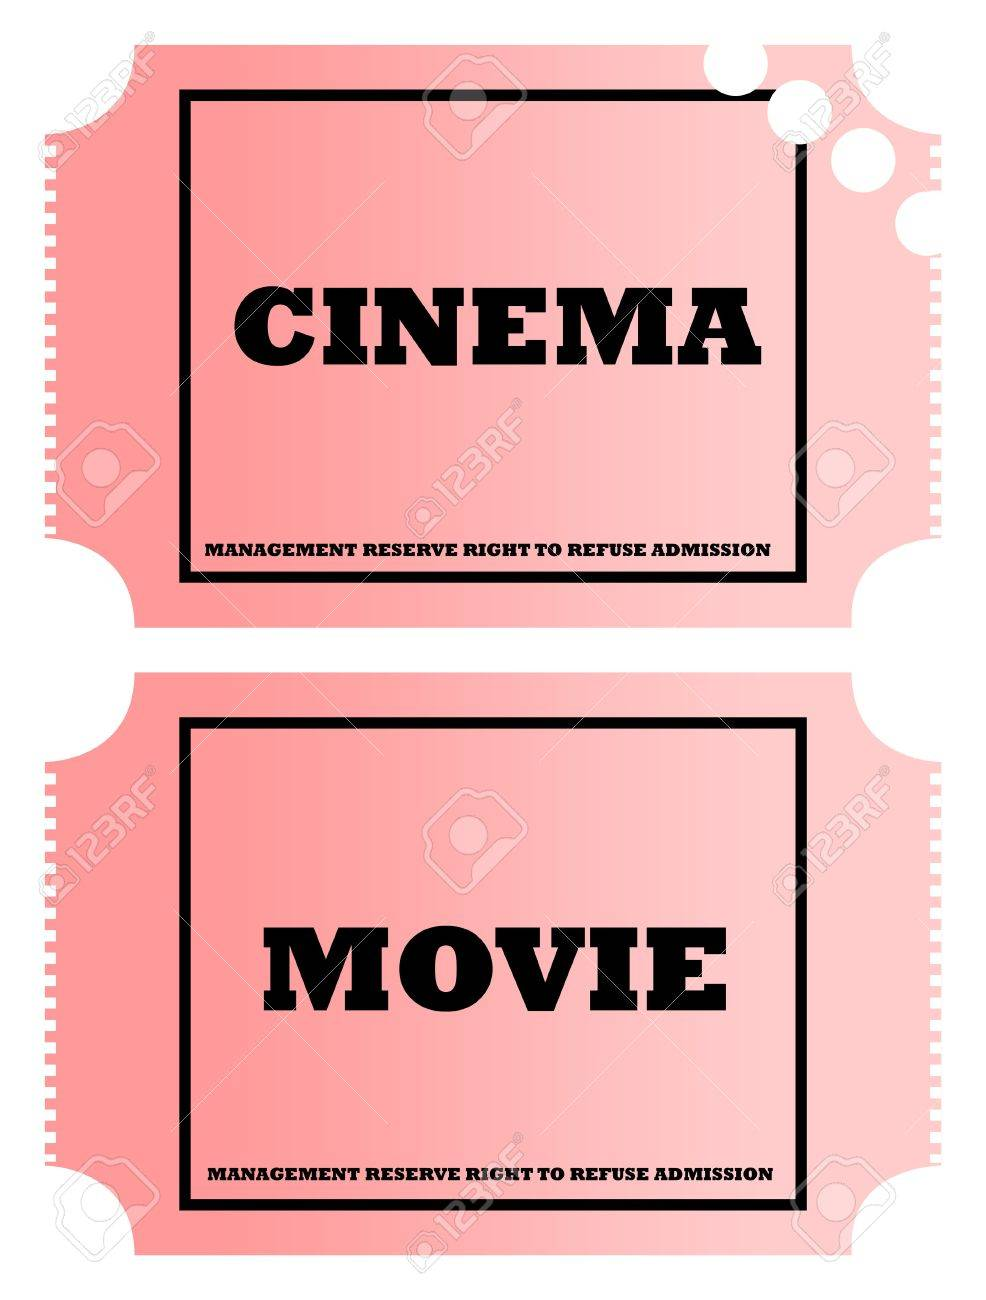 Cinema and movie tickets isolated on white background. Stock Photo - 6884222